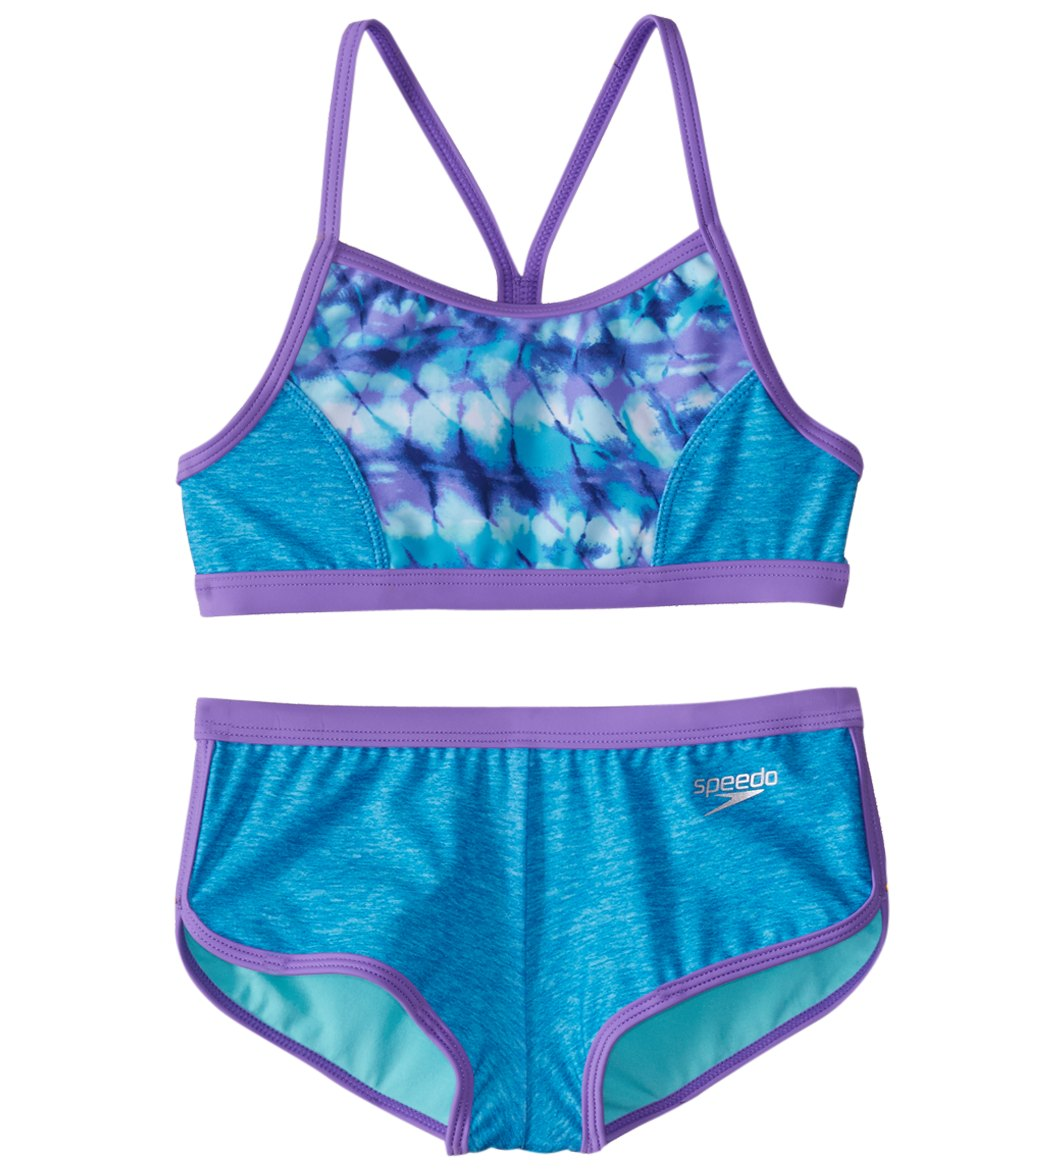 fec1d71f72 Speedo Girls' Digi Zig Zag Heather Two Piece Boyshort Bikini Set (7-16)